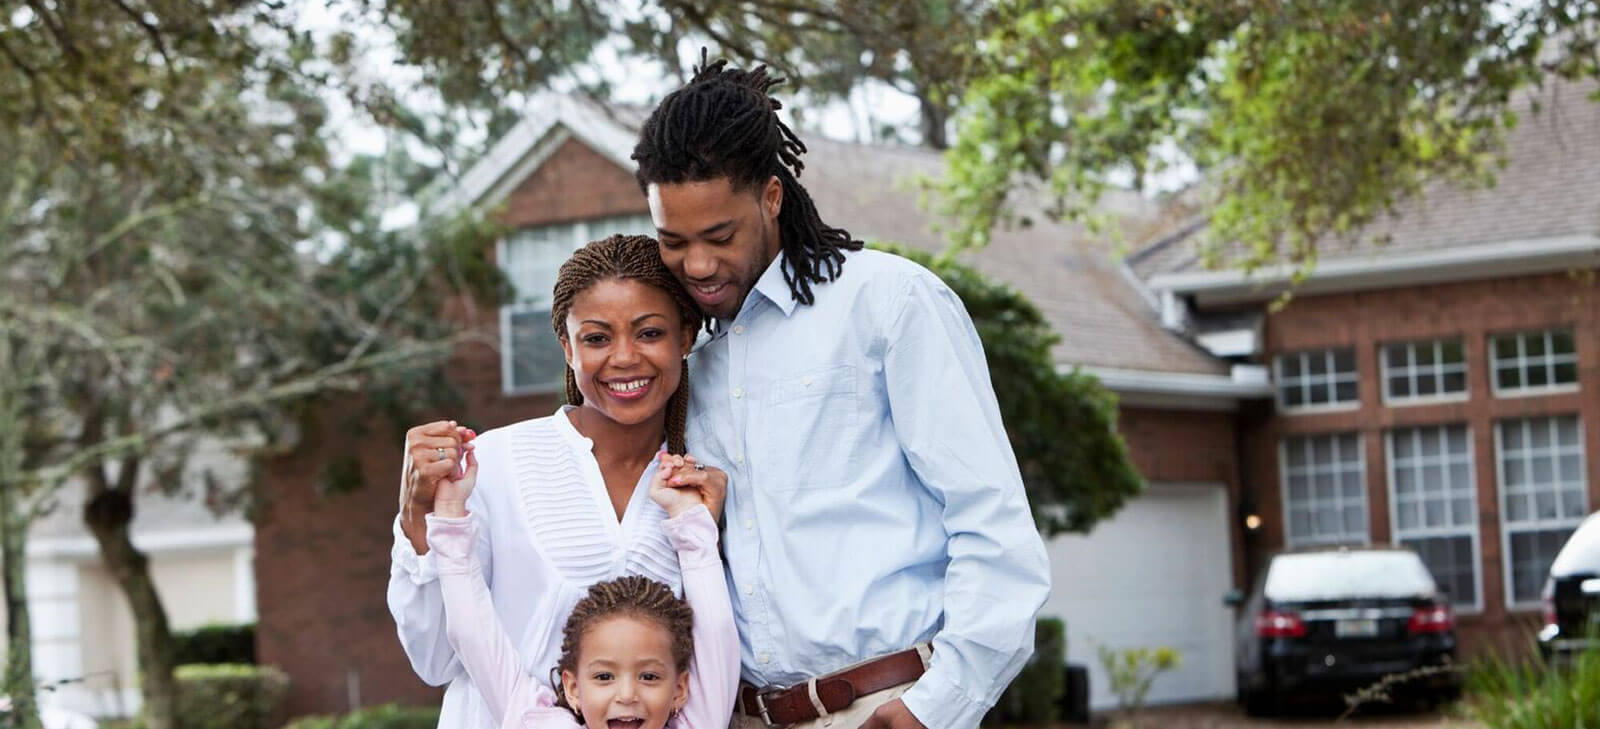 Home Insurance Specialists